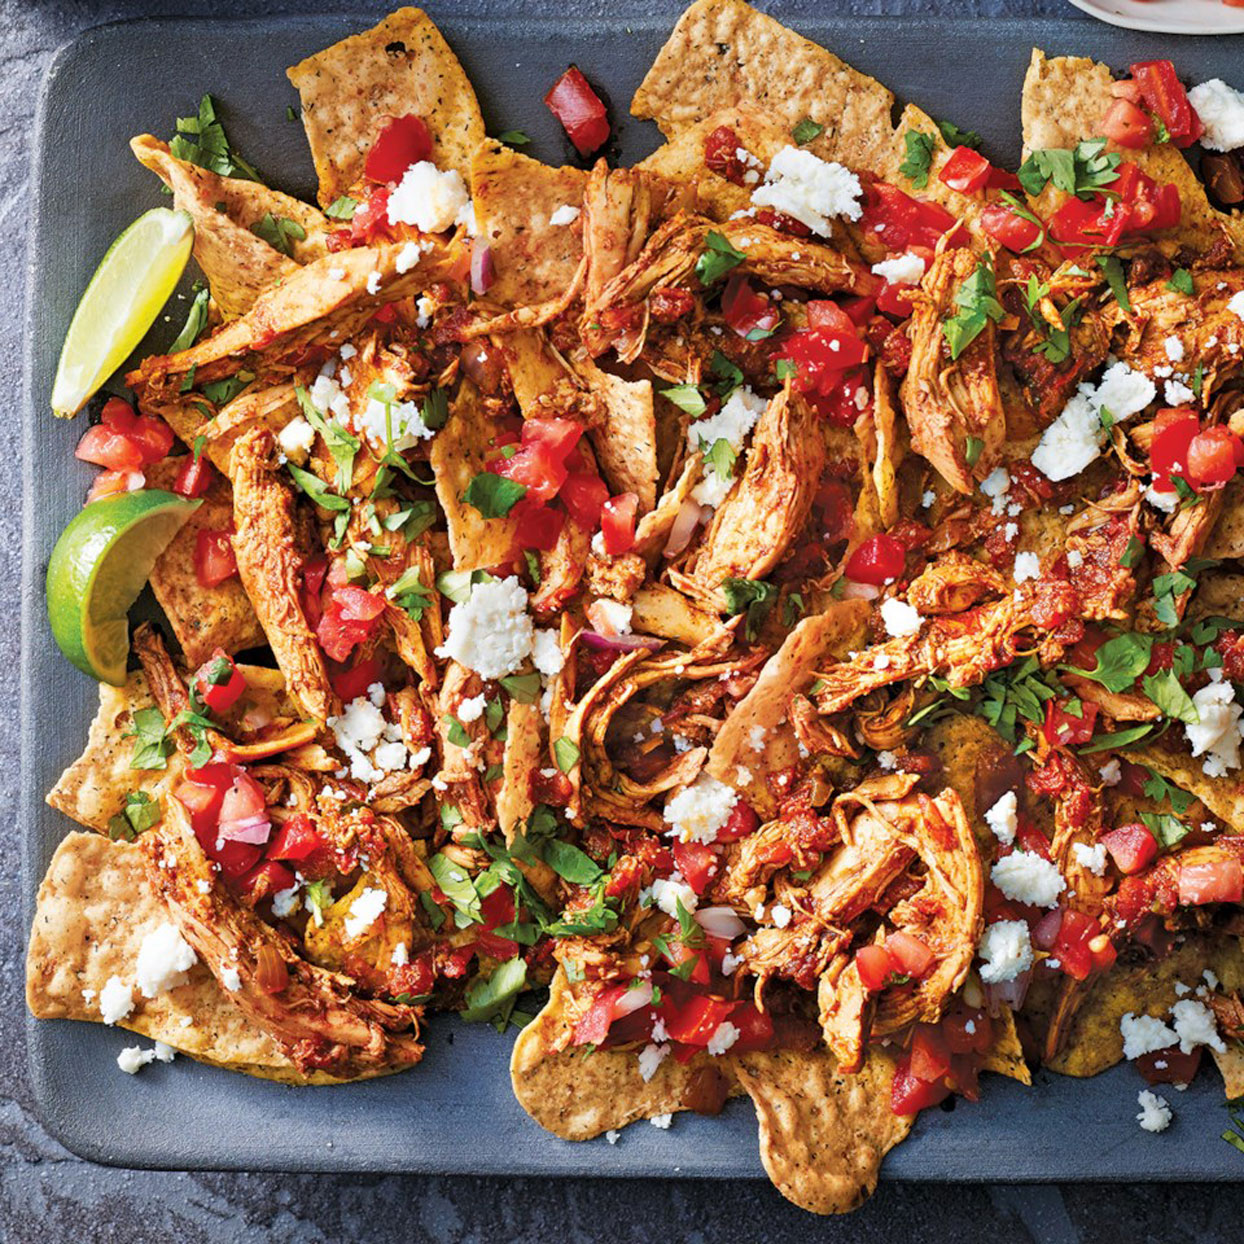 turkey-nachos-with-salsa-queso-fresco